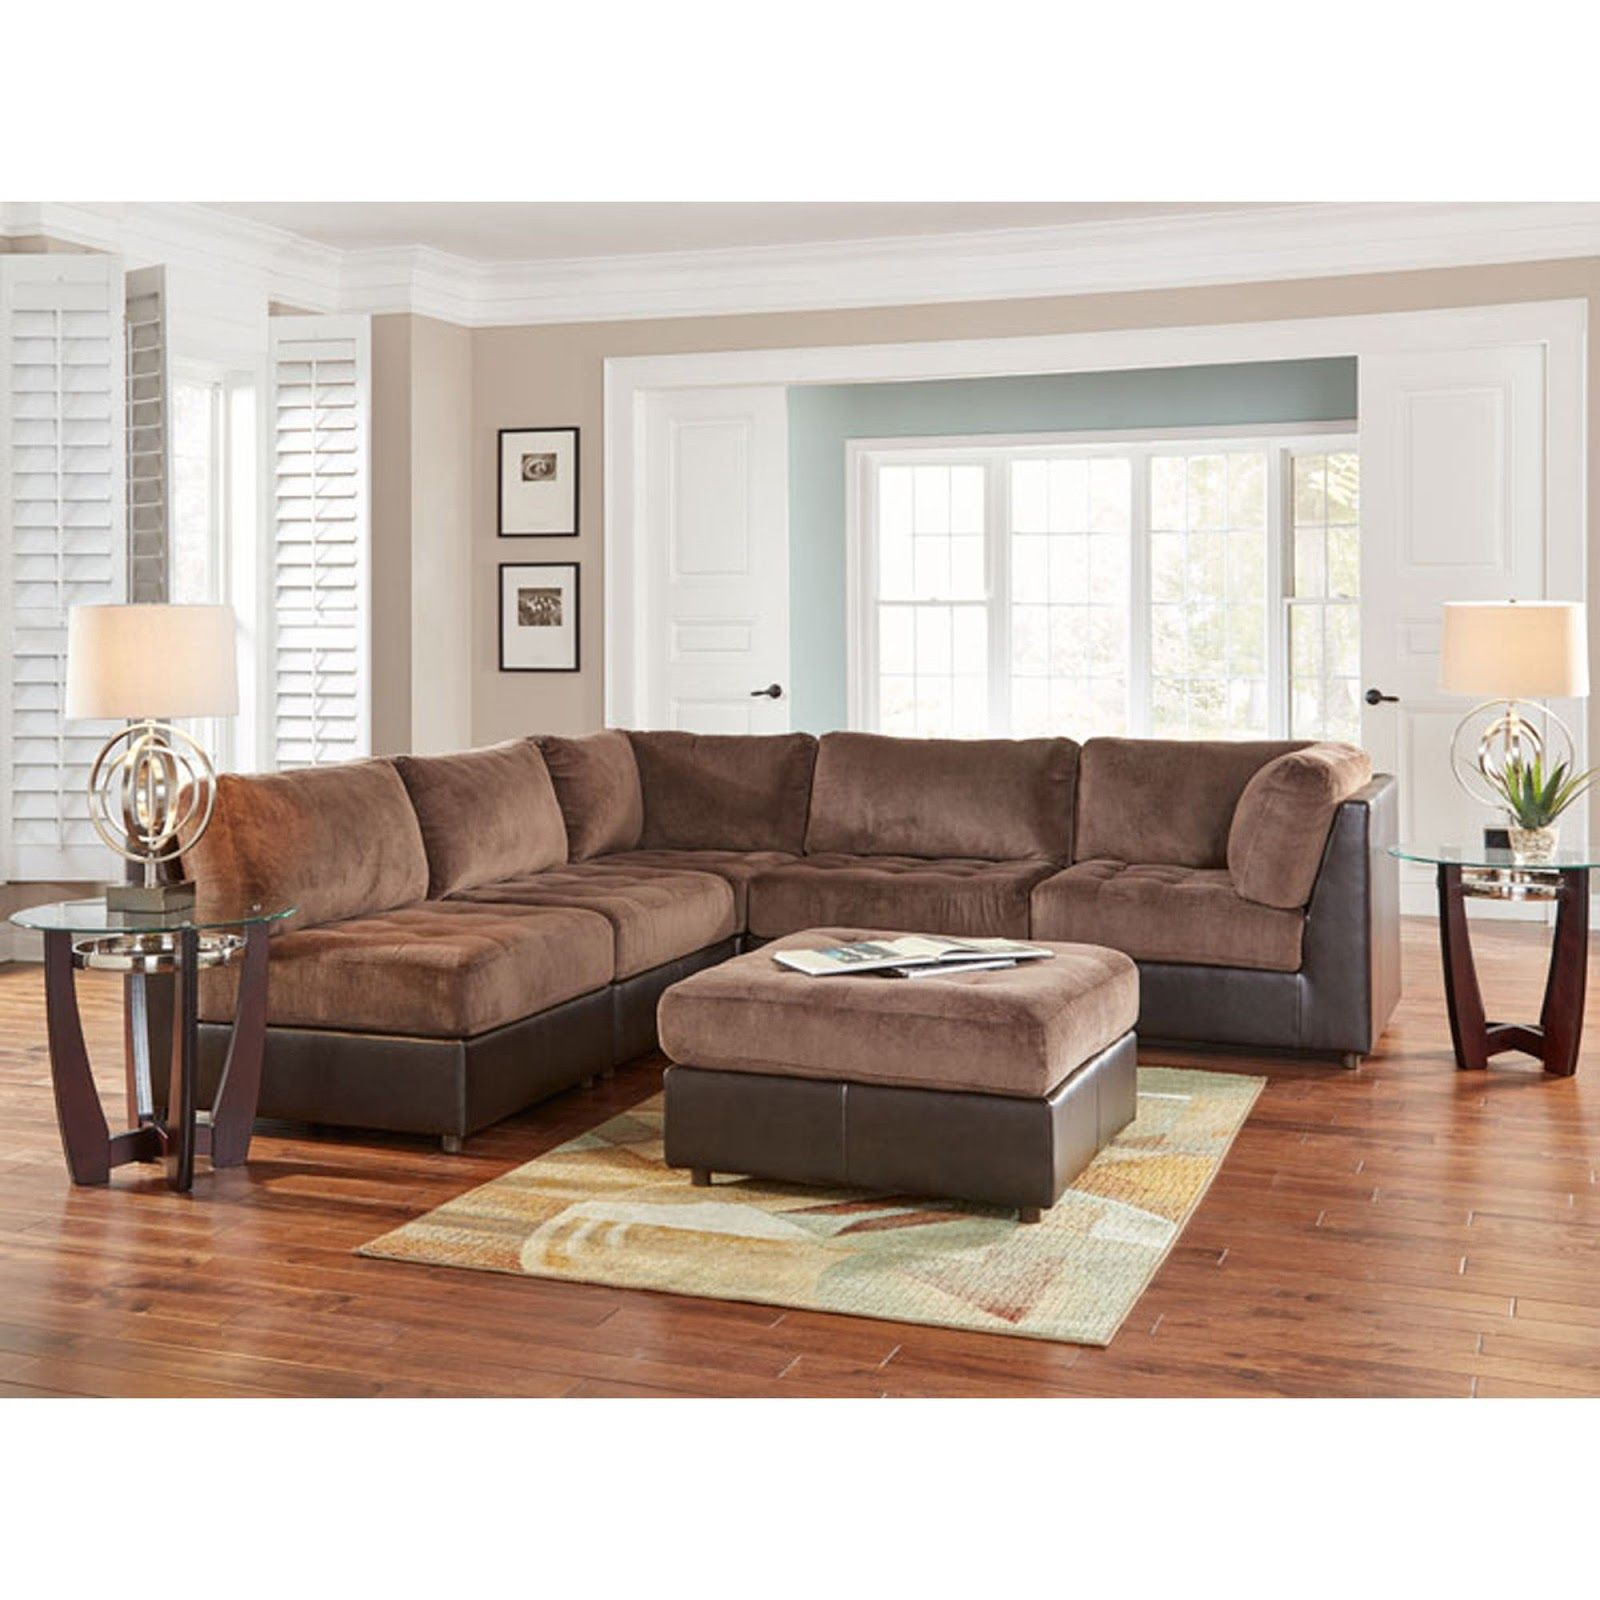 Best 52 Living Room Design Ideas Cheap Living Room Sets 400 x 300